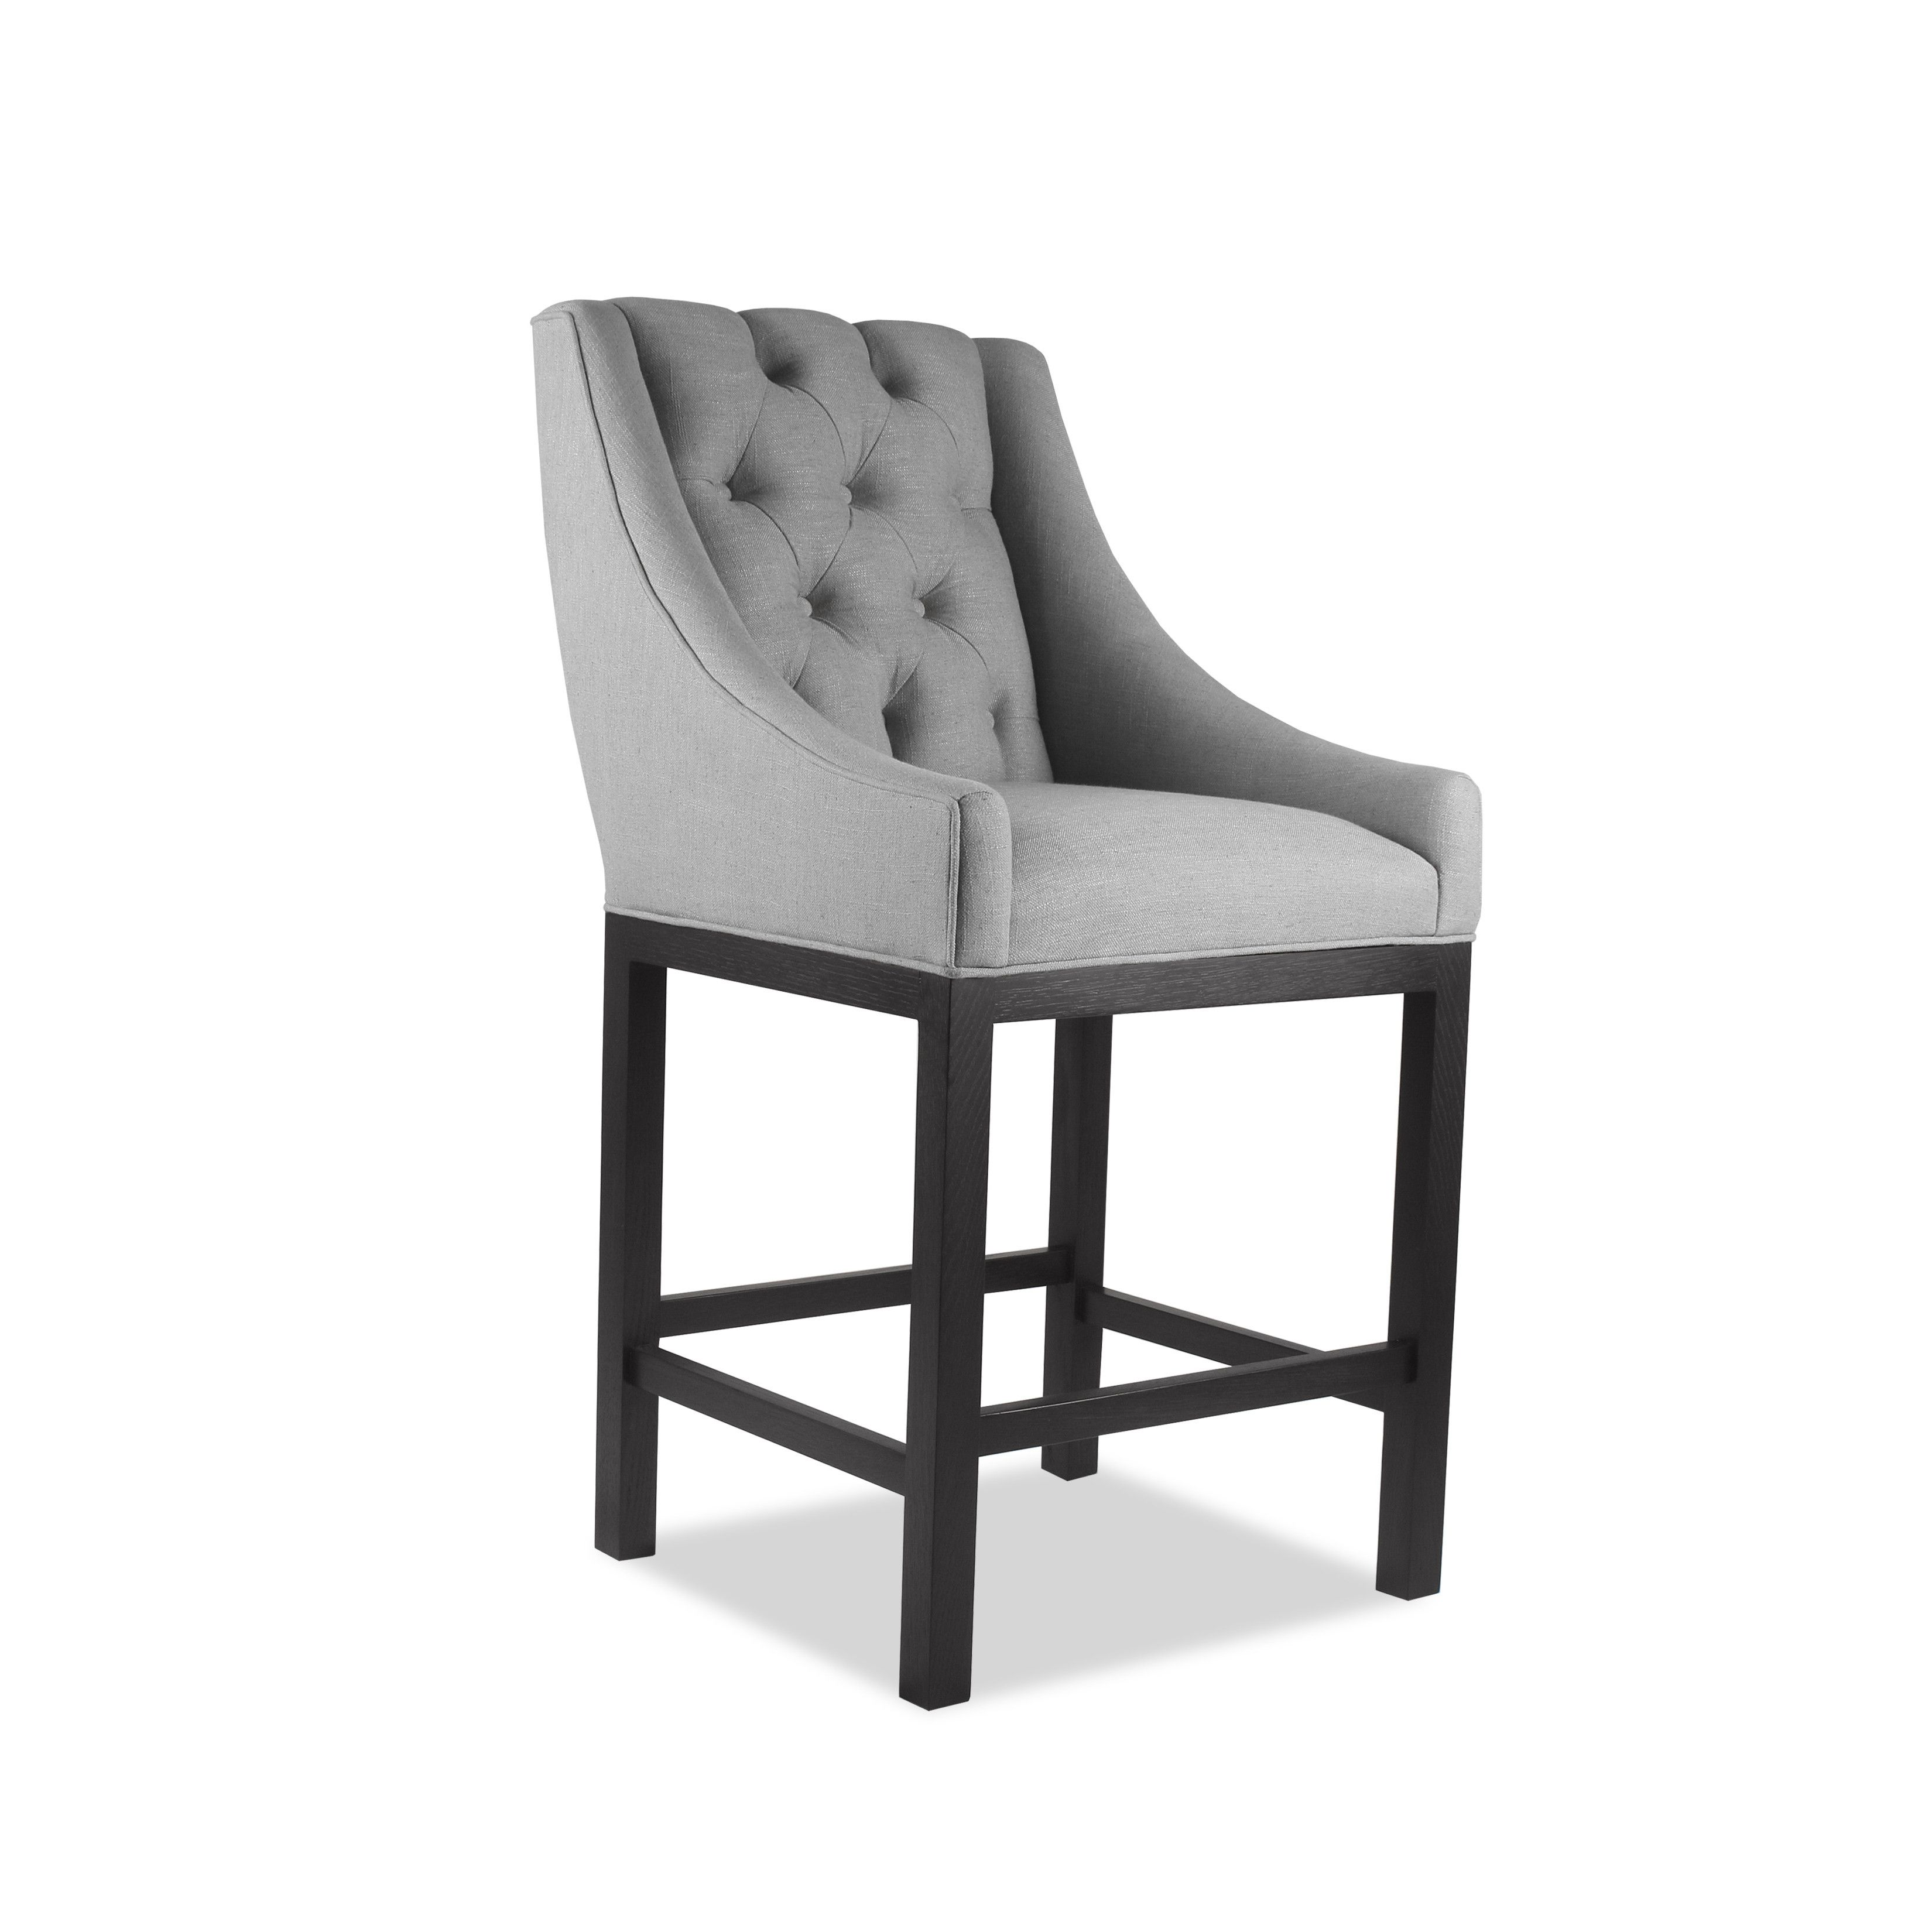 Lovely Bar Stool   Introduce Chic And Comfortable Seating To Your Home Bar With  This South Cone Naples 30 In. Linen Blend Fabric Wraps The Cushioned Seats,. Awesome Design